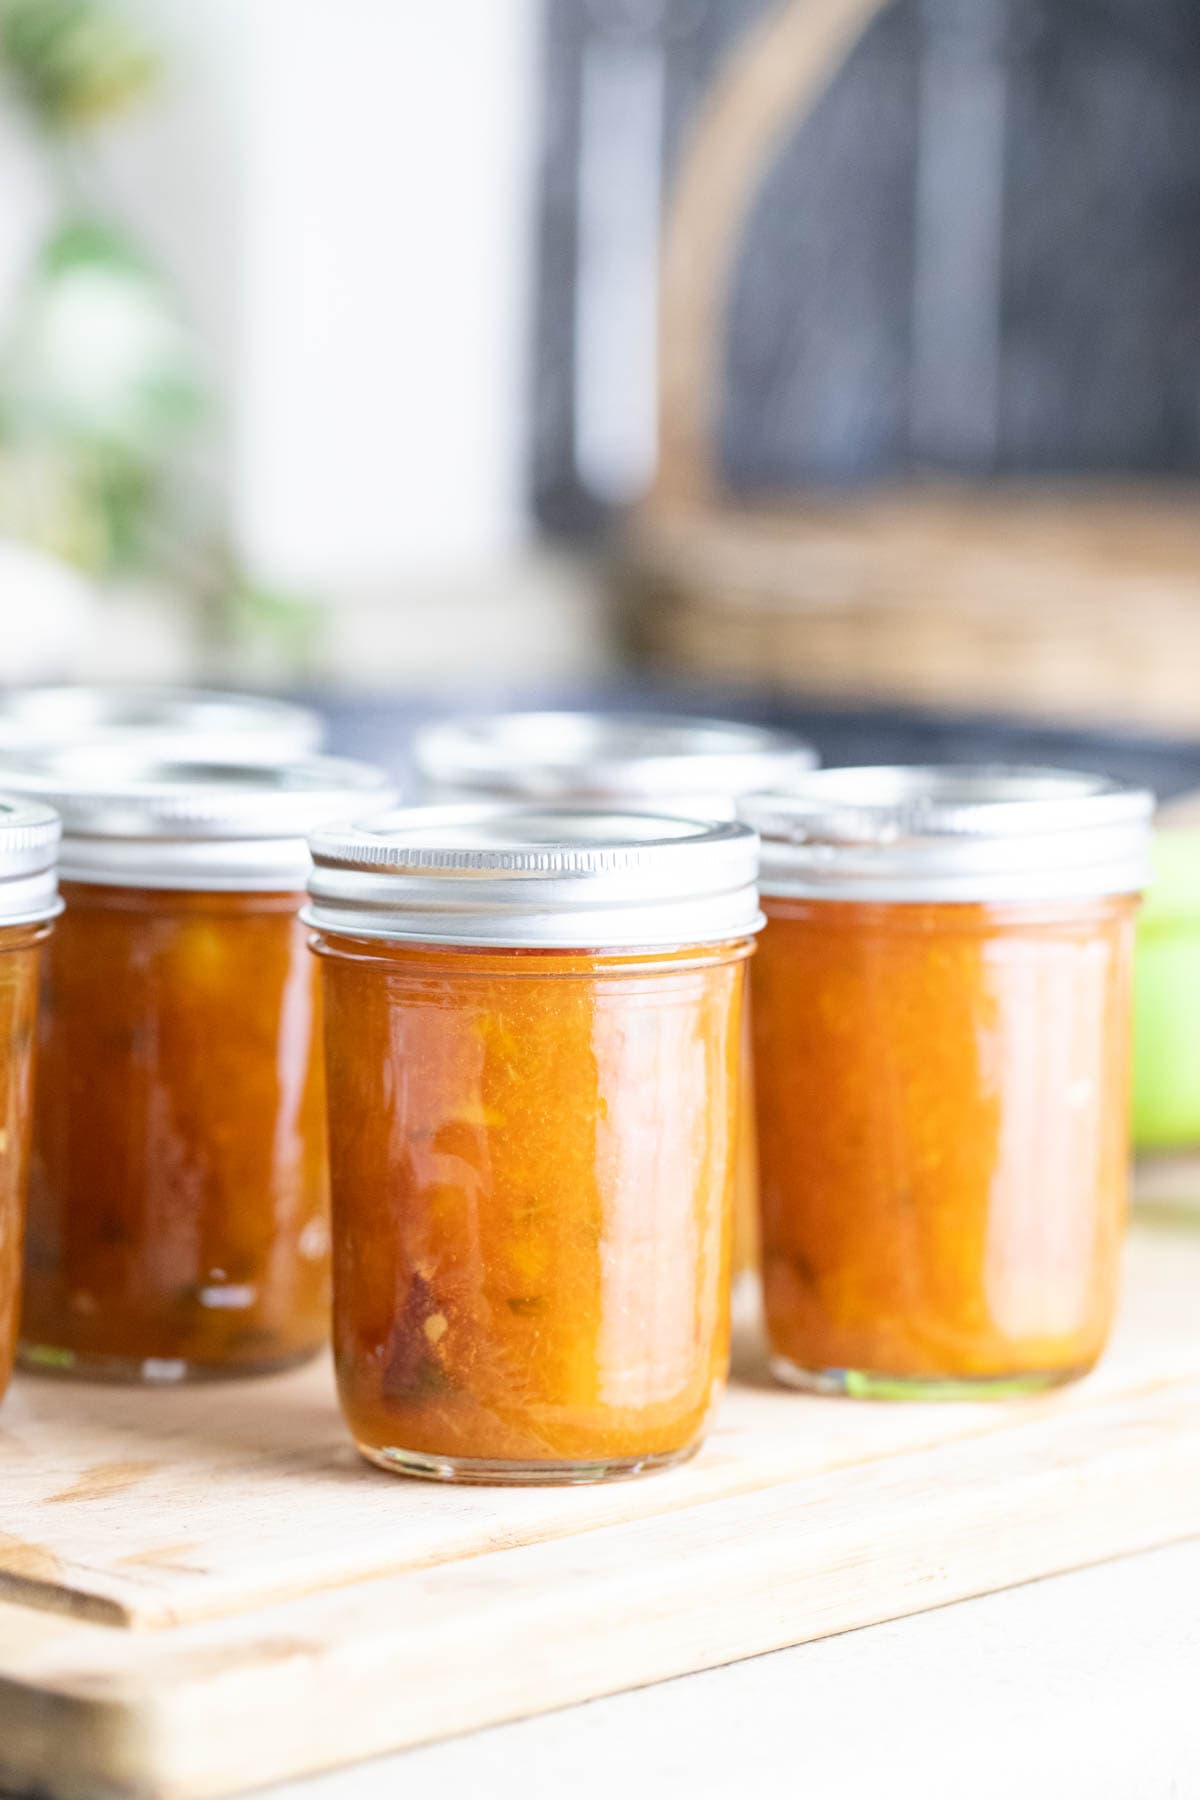 Jars with peach jalapeno jam ready for processing.